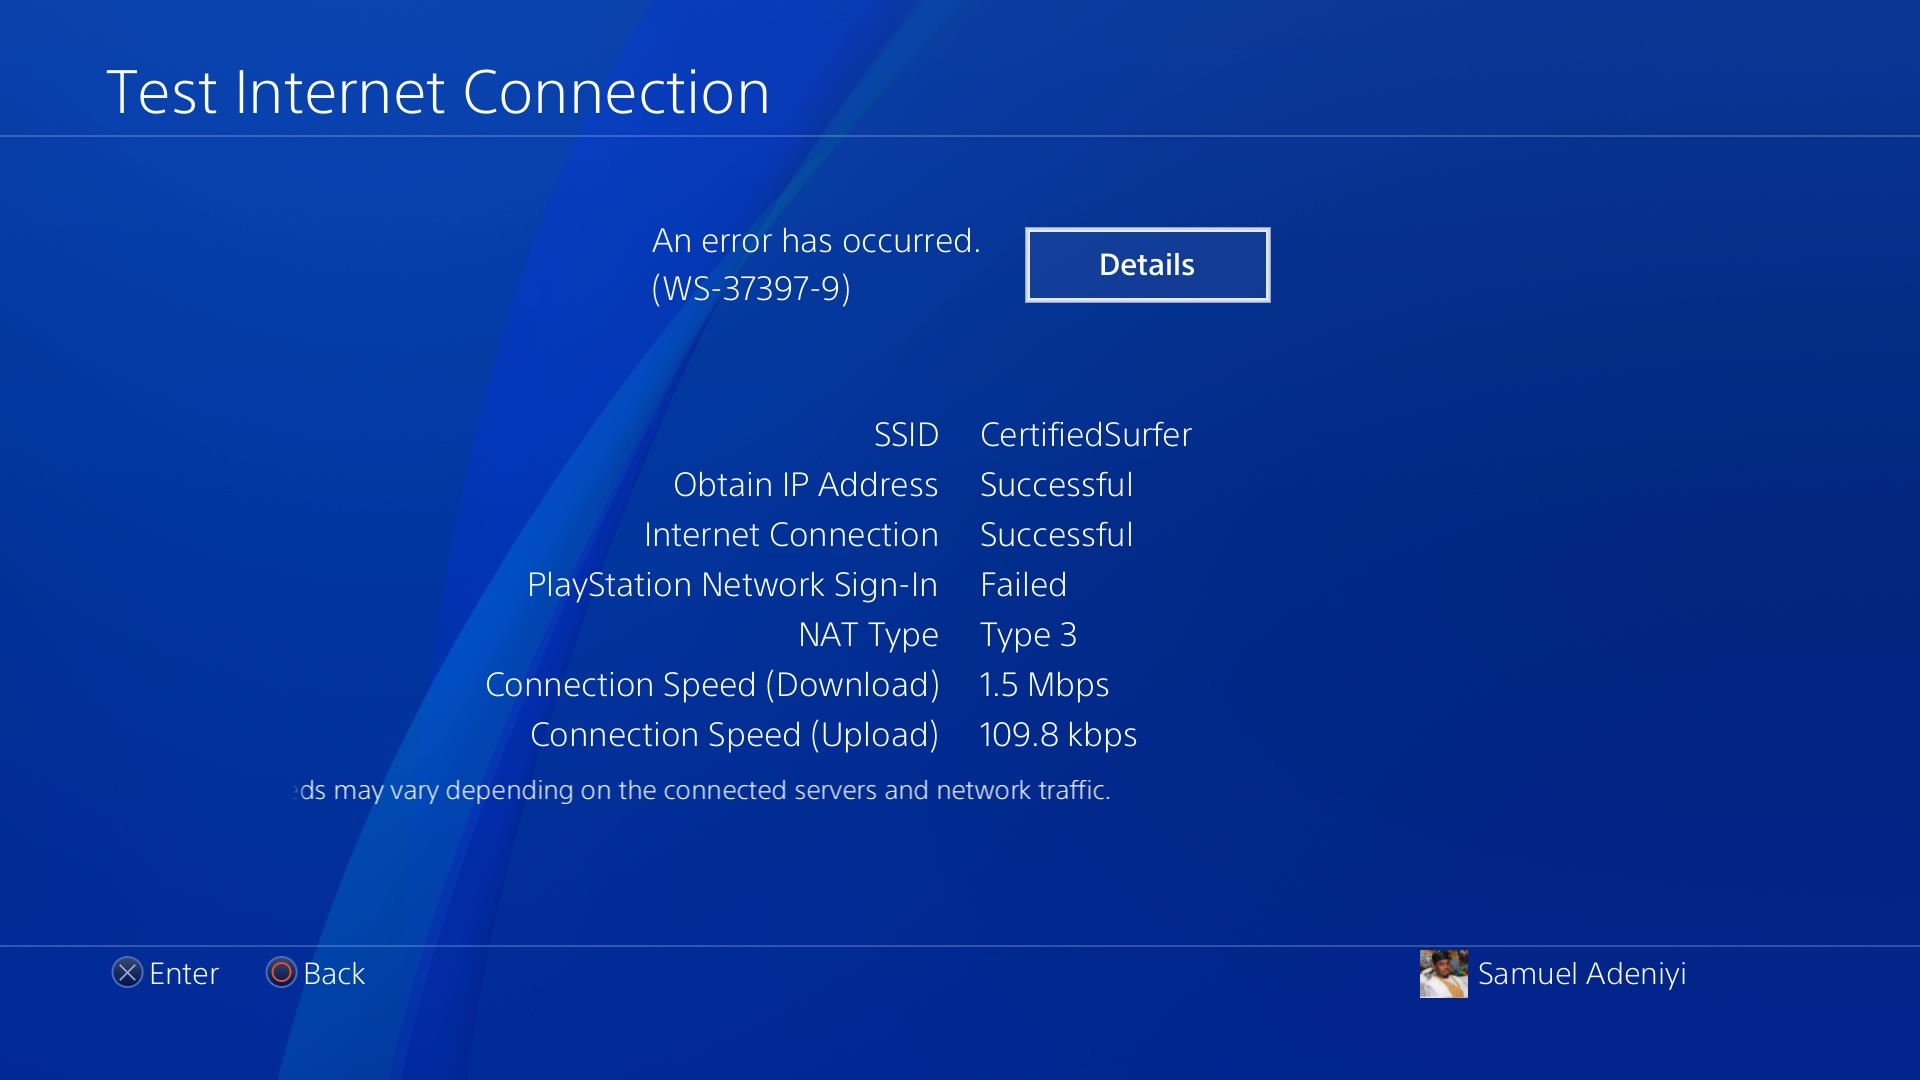 Unable to connect to Playstation network